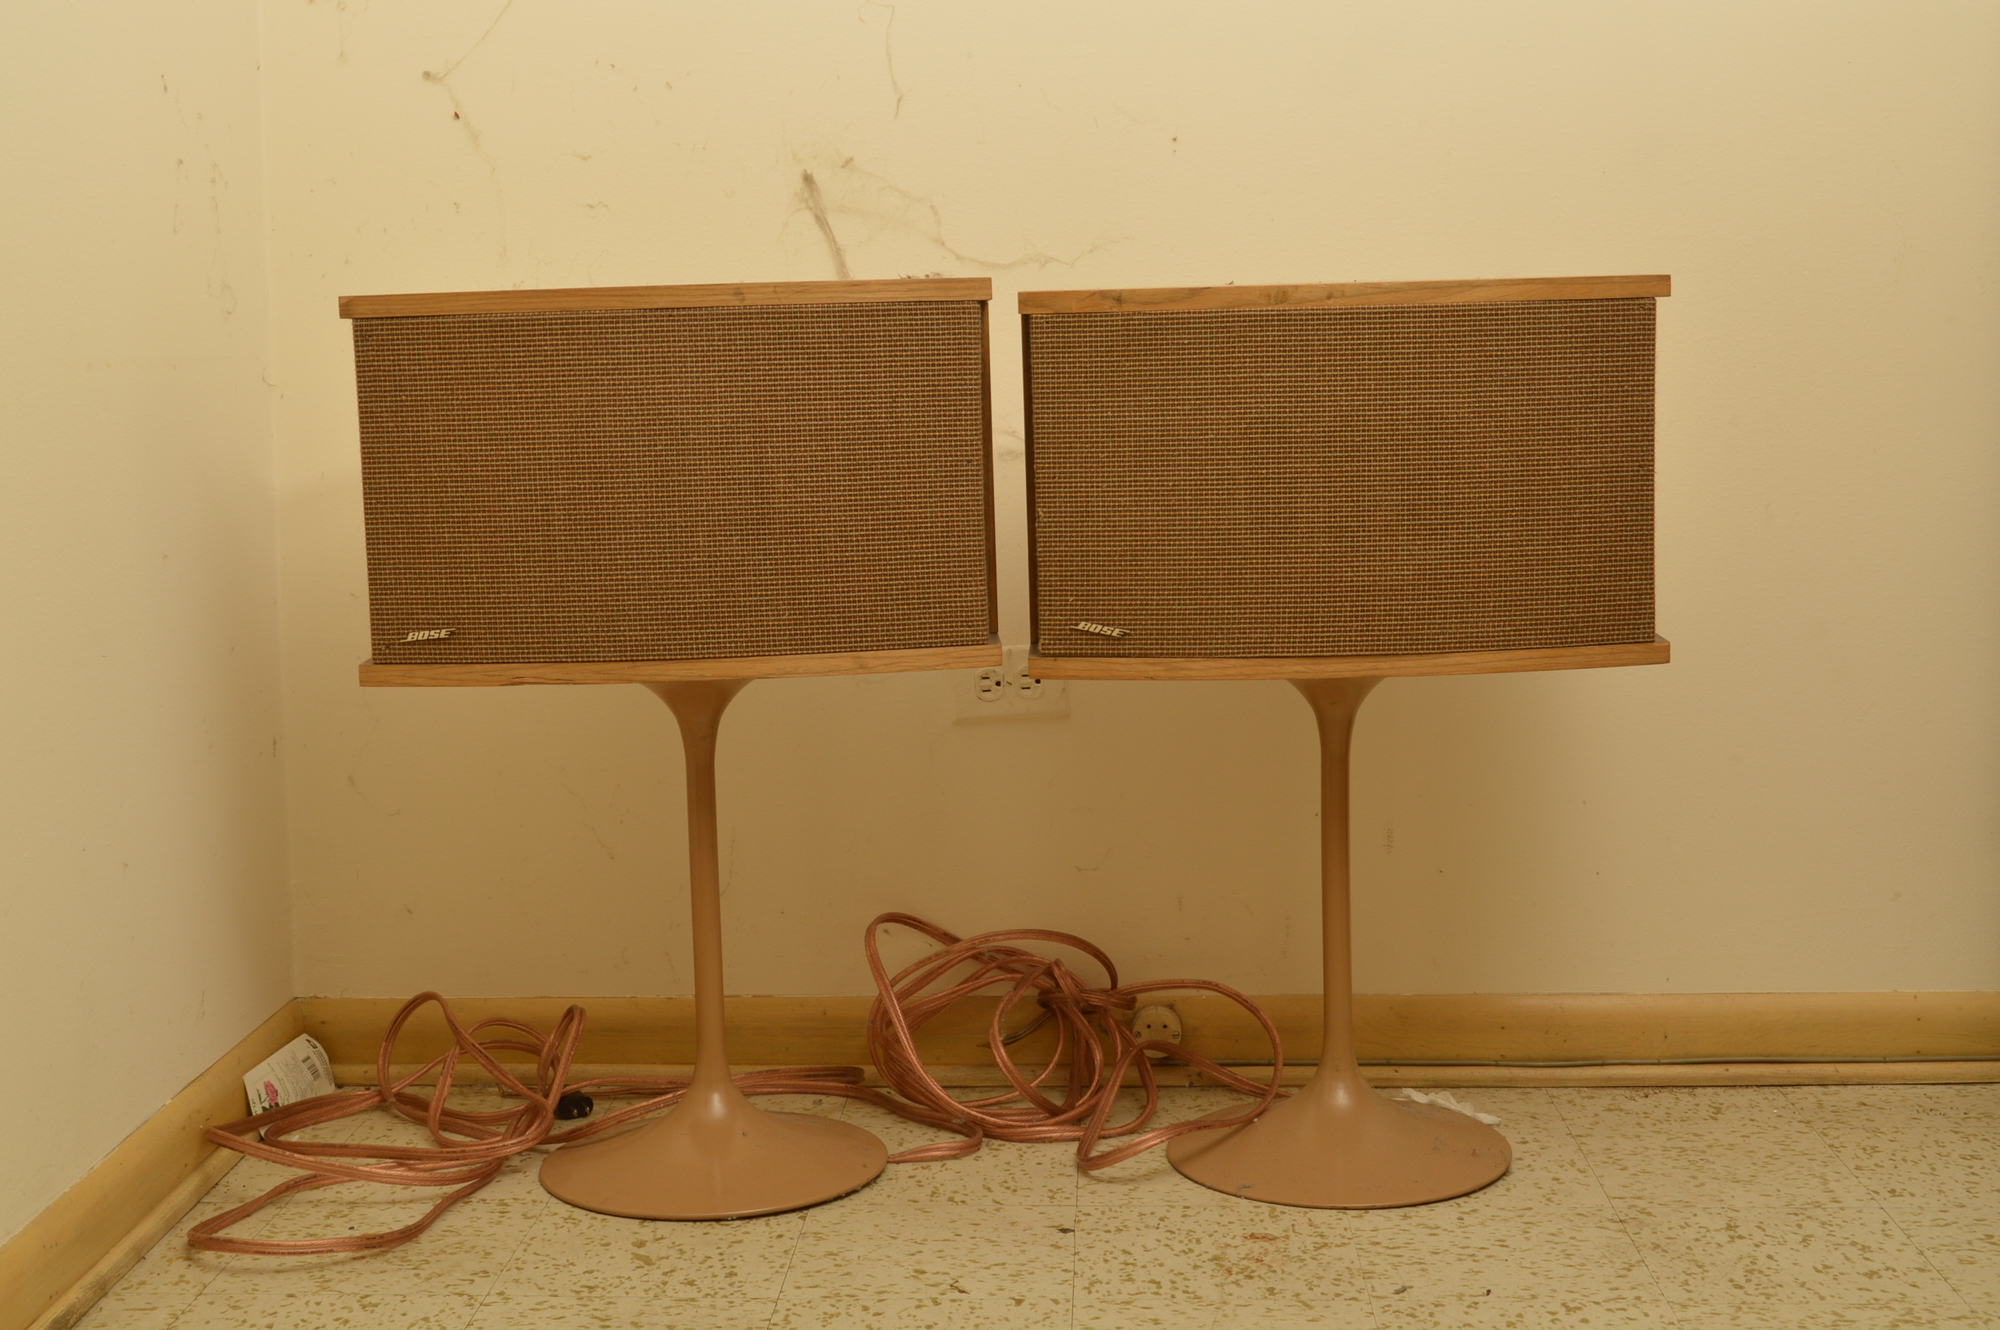 vintage bose speakers. vintage bose speakers on tulip stands